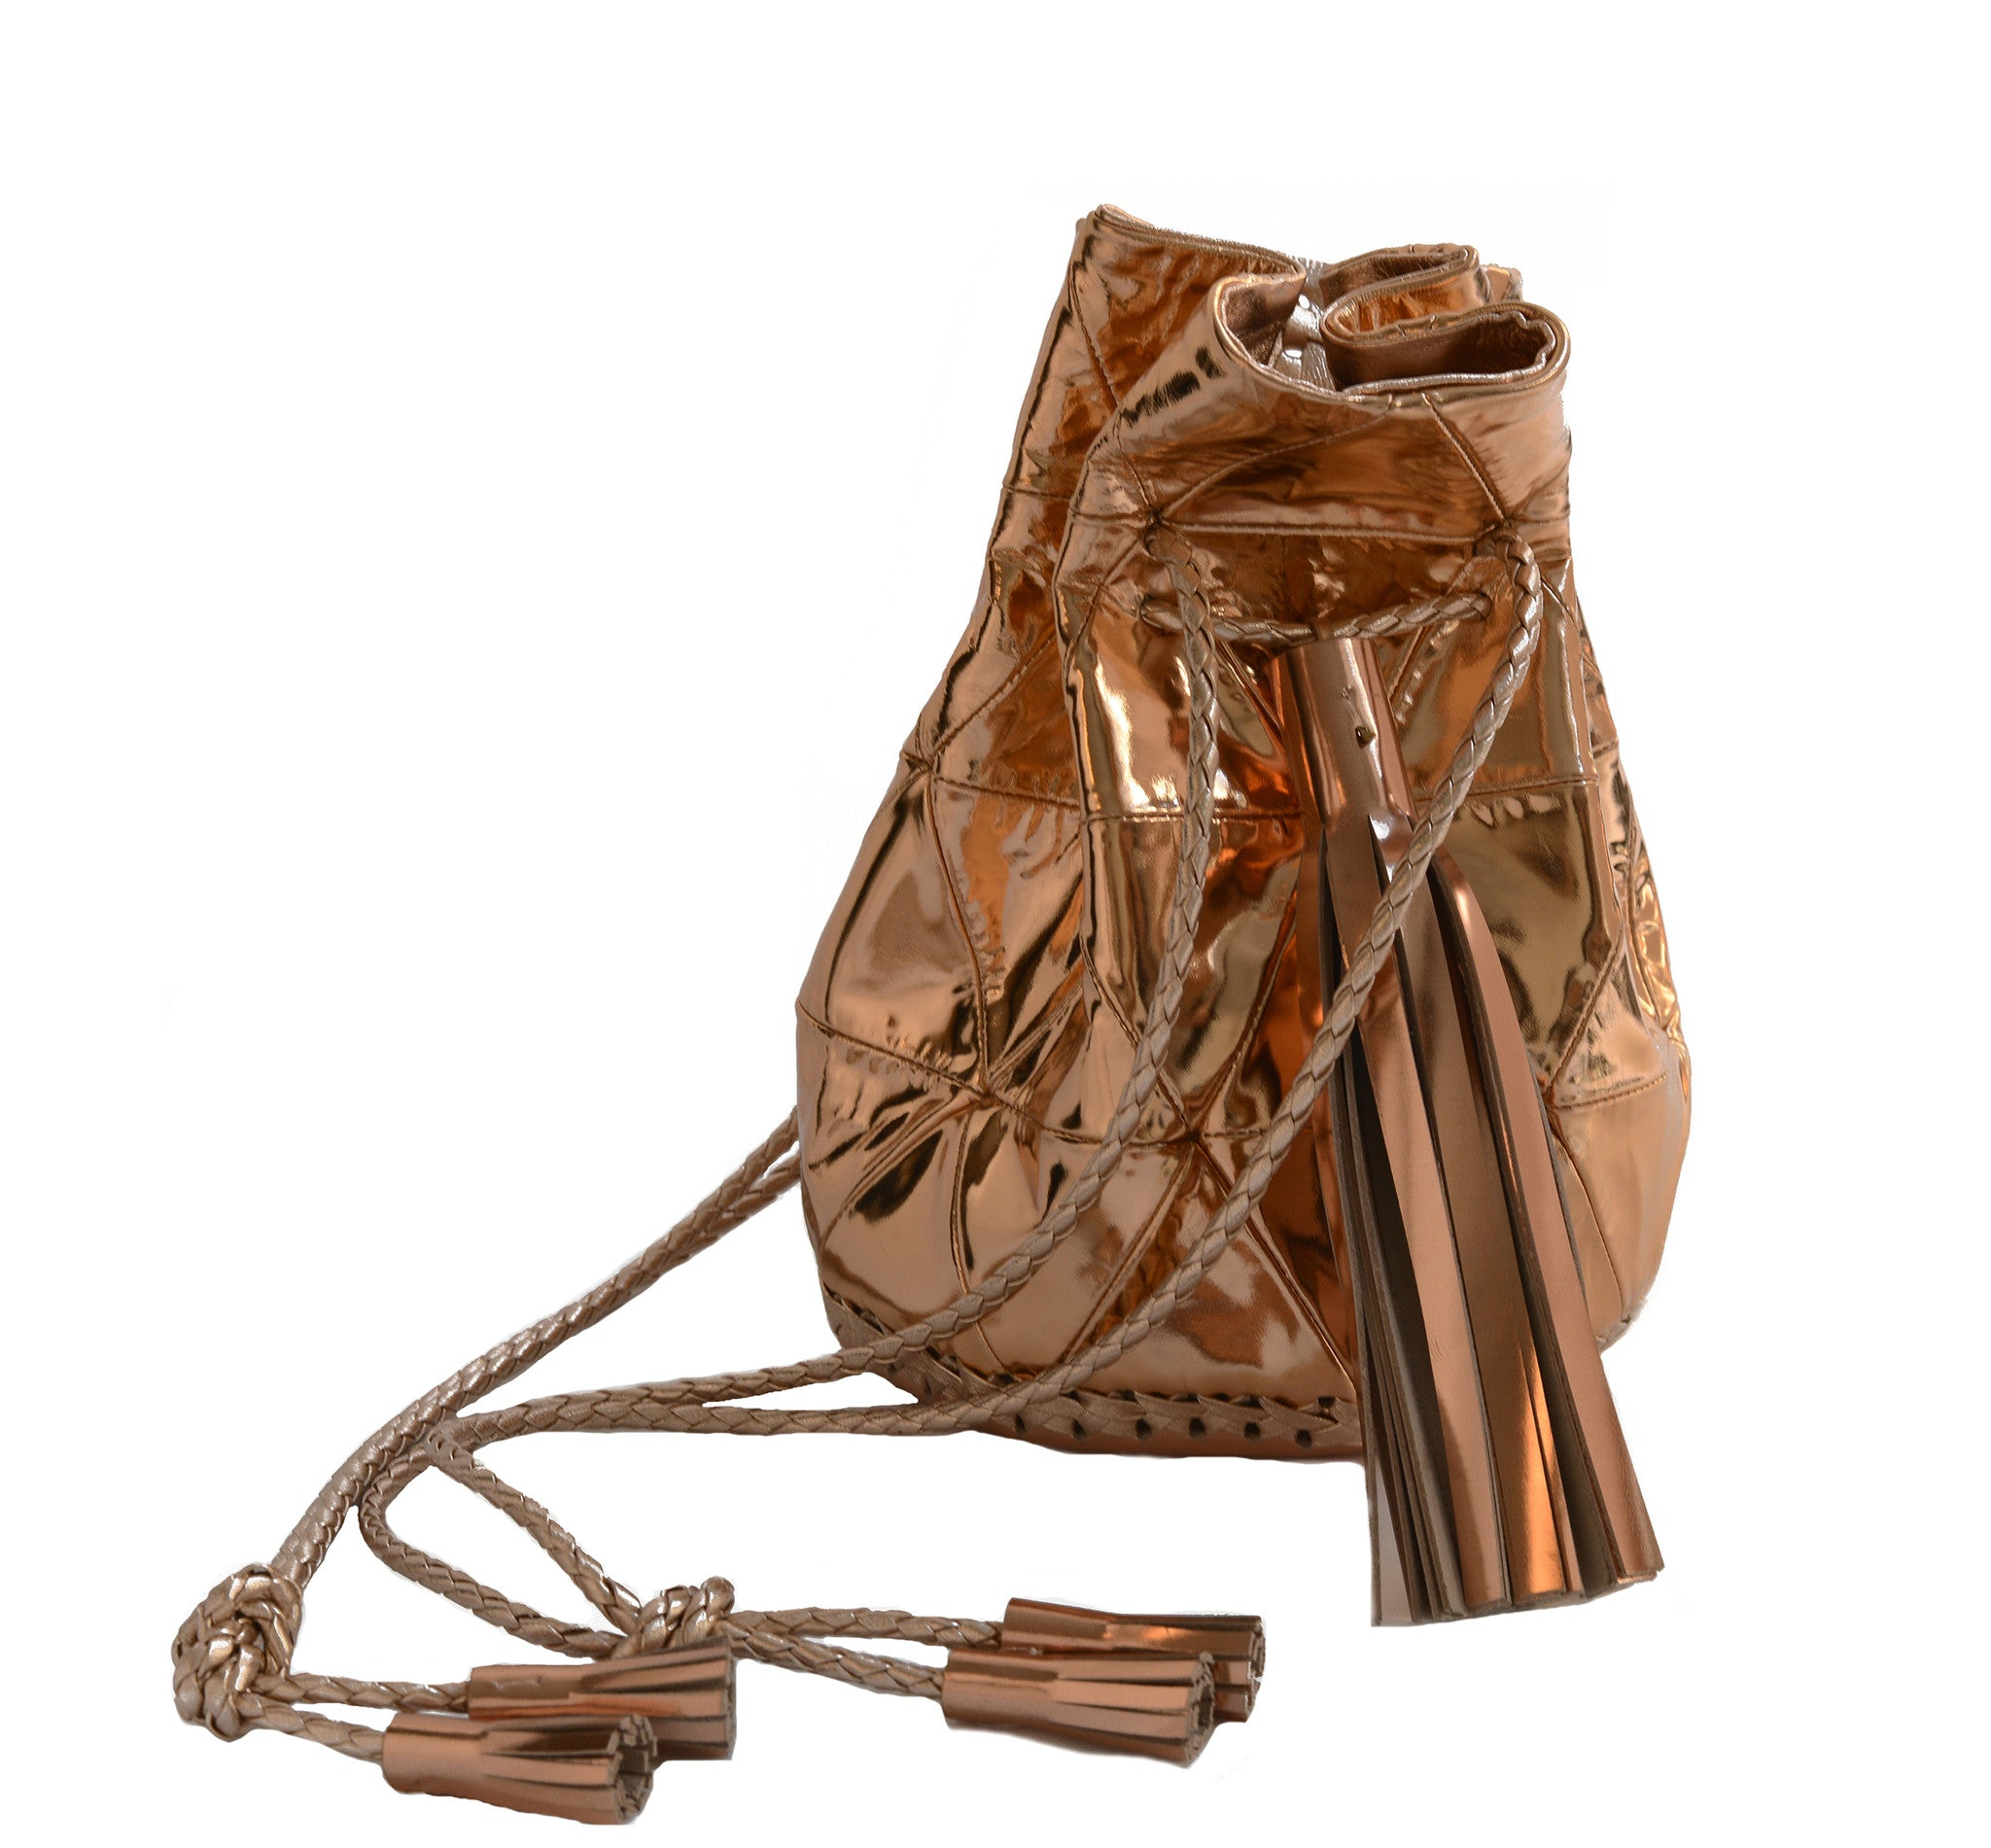 Copper Mirror Patent Reflective Shiny Metallic Leather Triangle Patchwork Bullet Bag Wendy Nichol Handbag Purse Designer Handmade in NYC New York City Bucket Drawstring pouch bag Large Fringe Tassel Tassels Metallic Reflective Shiny Magician Witch